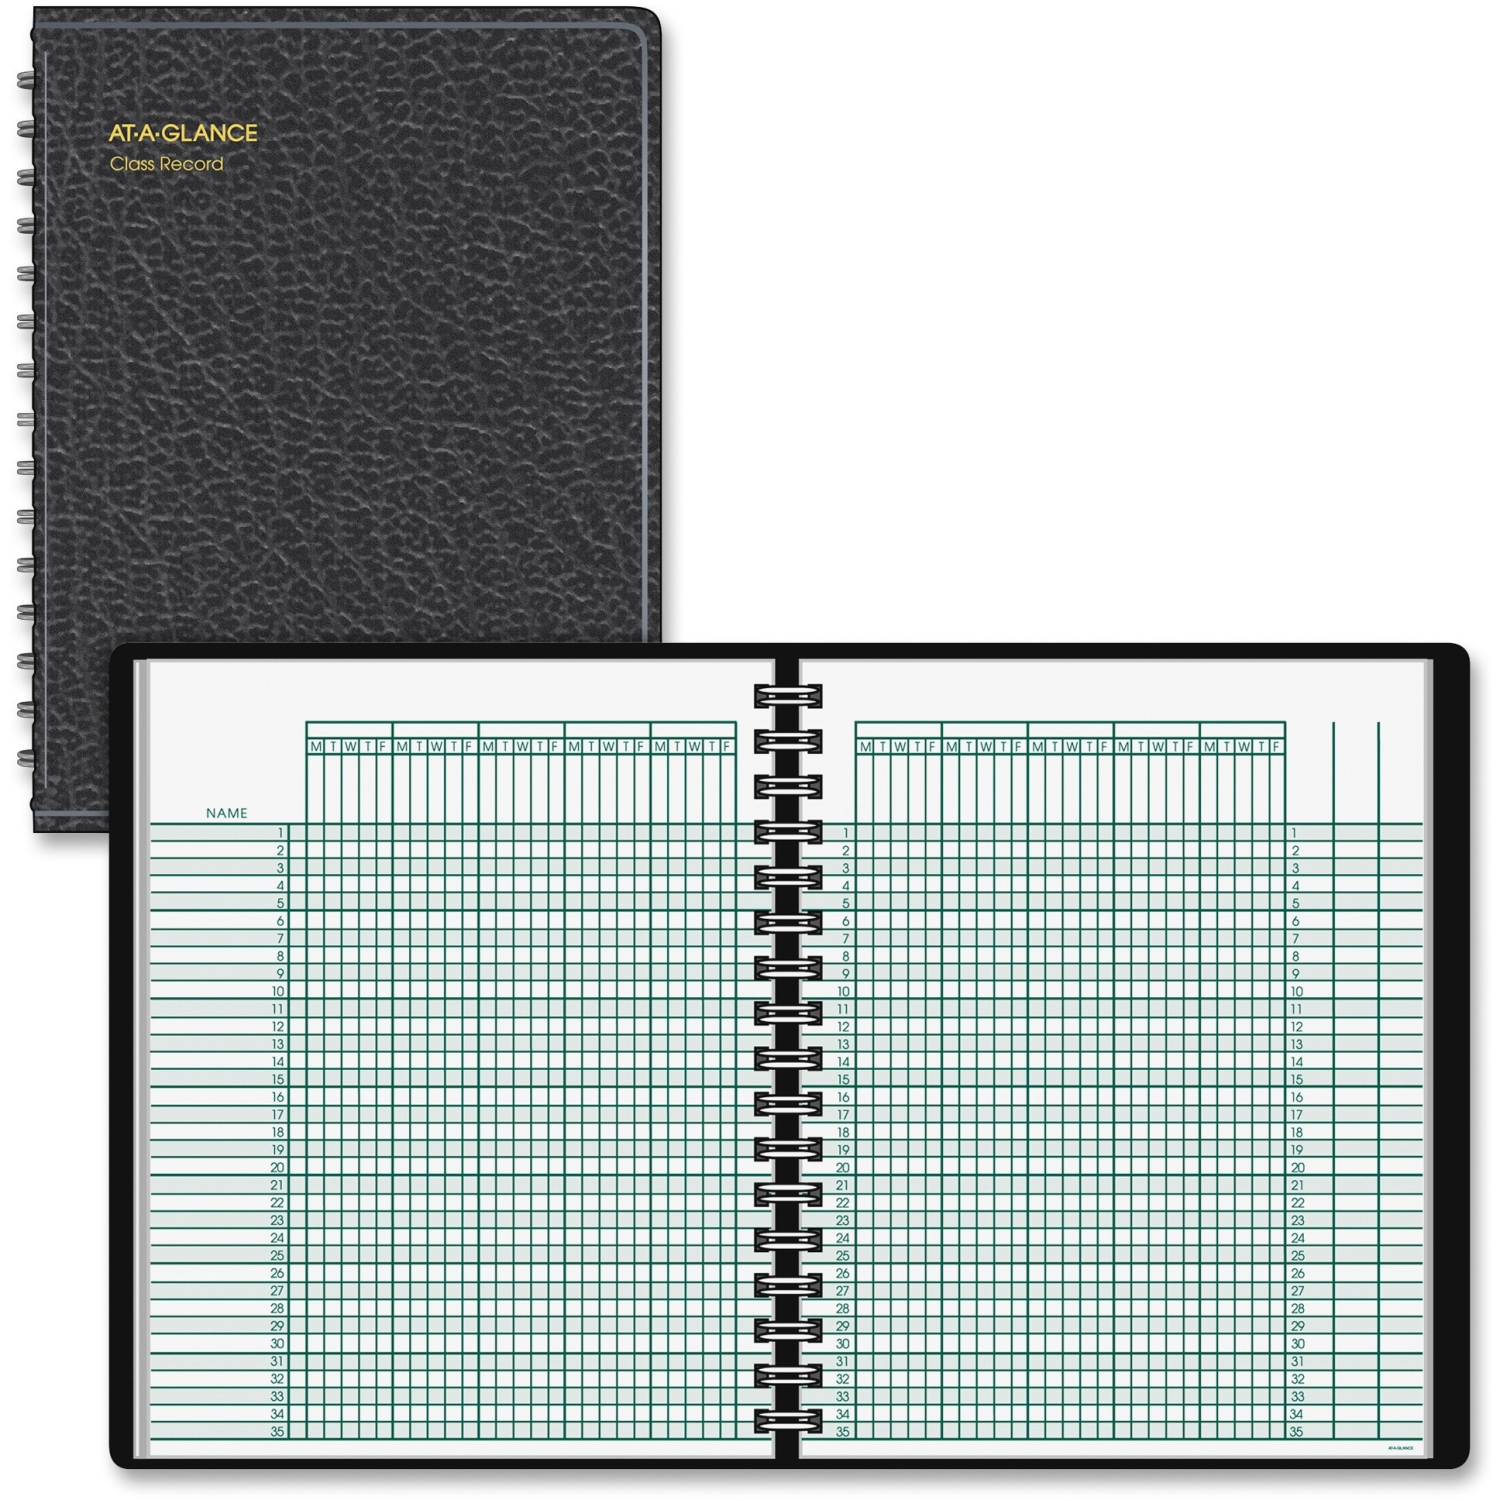 AT-A-GLANCE Undated Class Record Book, 10 7 8 x 8 1 4, Black by ACCO Brands Corporation